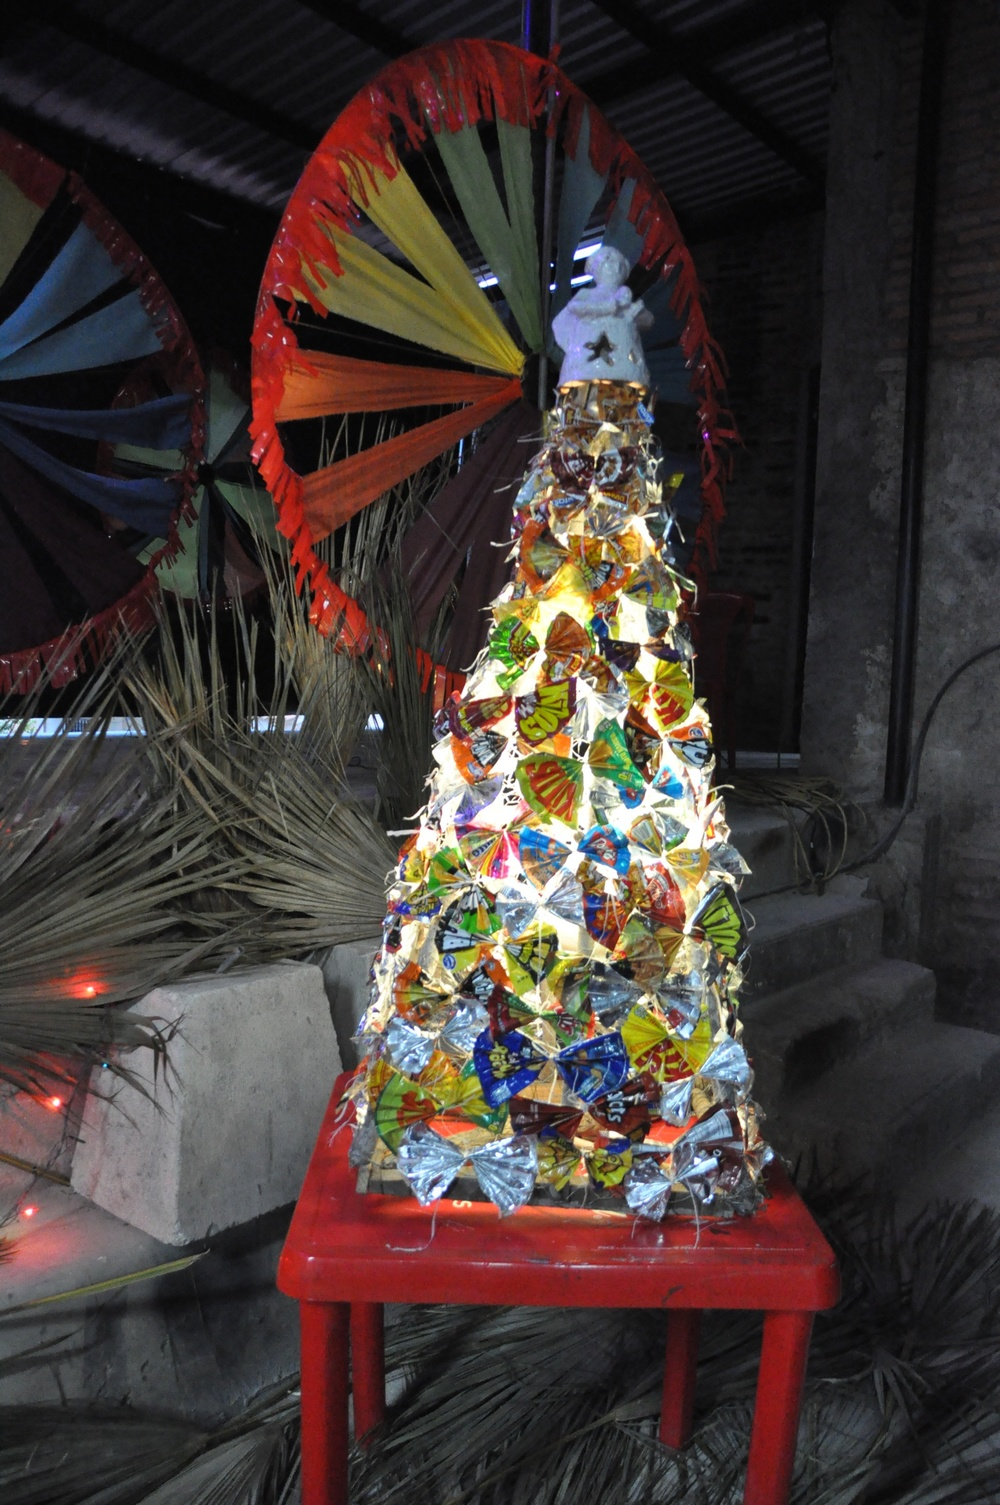 This tree was made from recycled snack bags